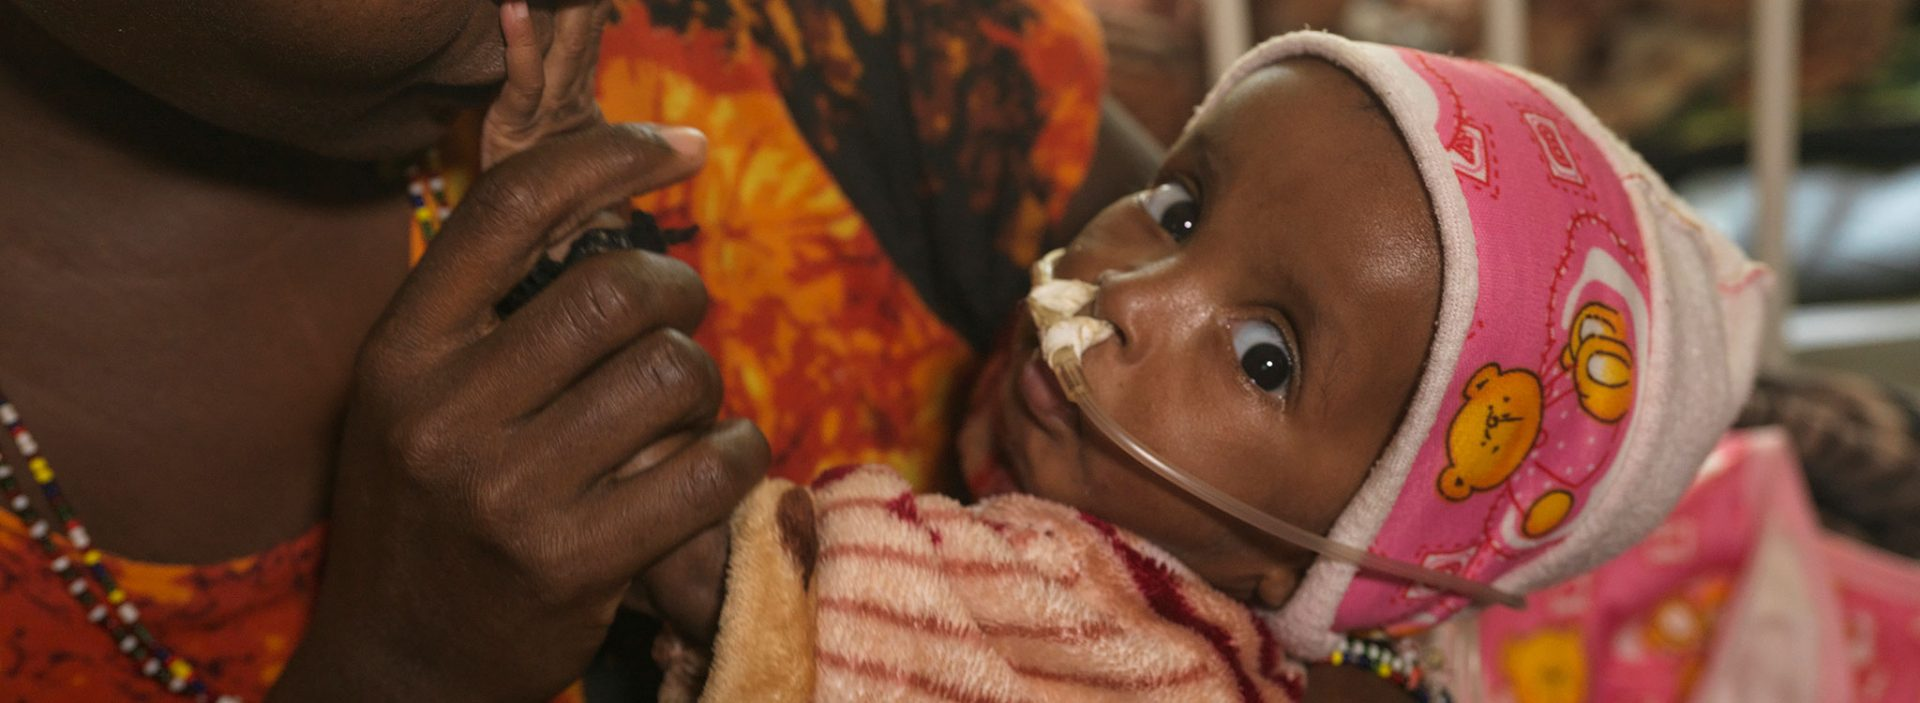 Fardosa receives treatment at an Action Against Hunger nutrition centre in Ethiopia.